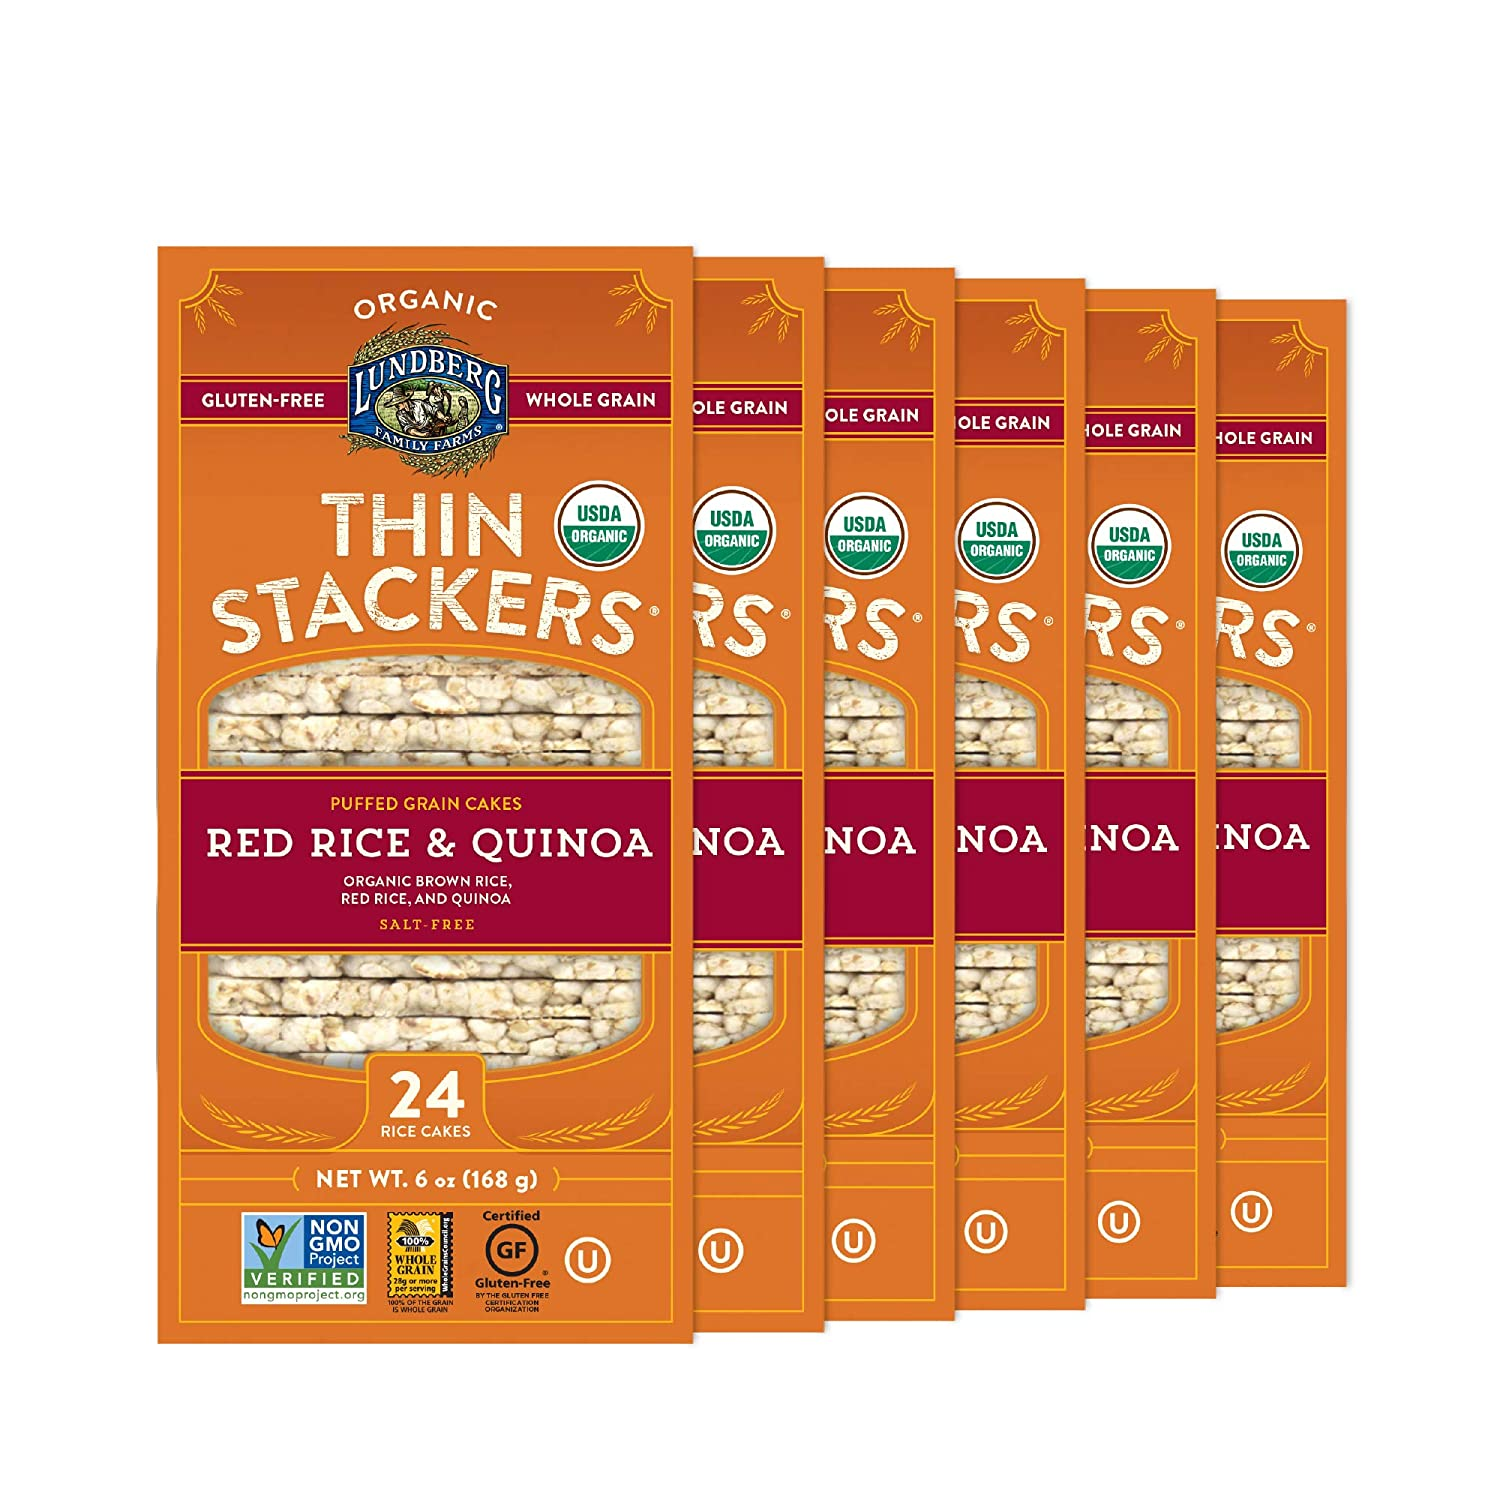 Lundberg Organic Thin Stackers, Whole Grain Brown Rice, Red Rice & Quinoa, 6 Ounce (Pack of 6), 36 Ounce